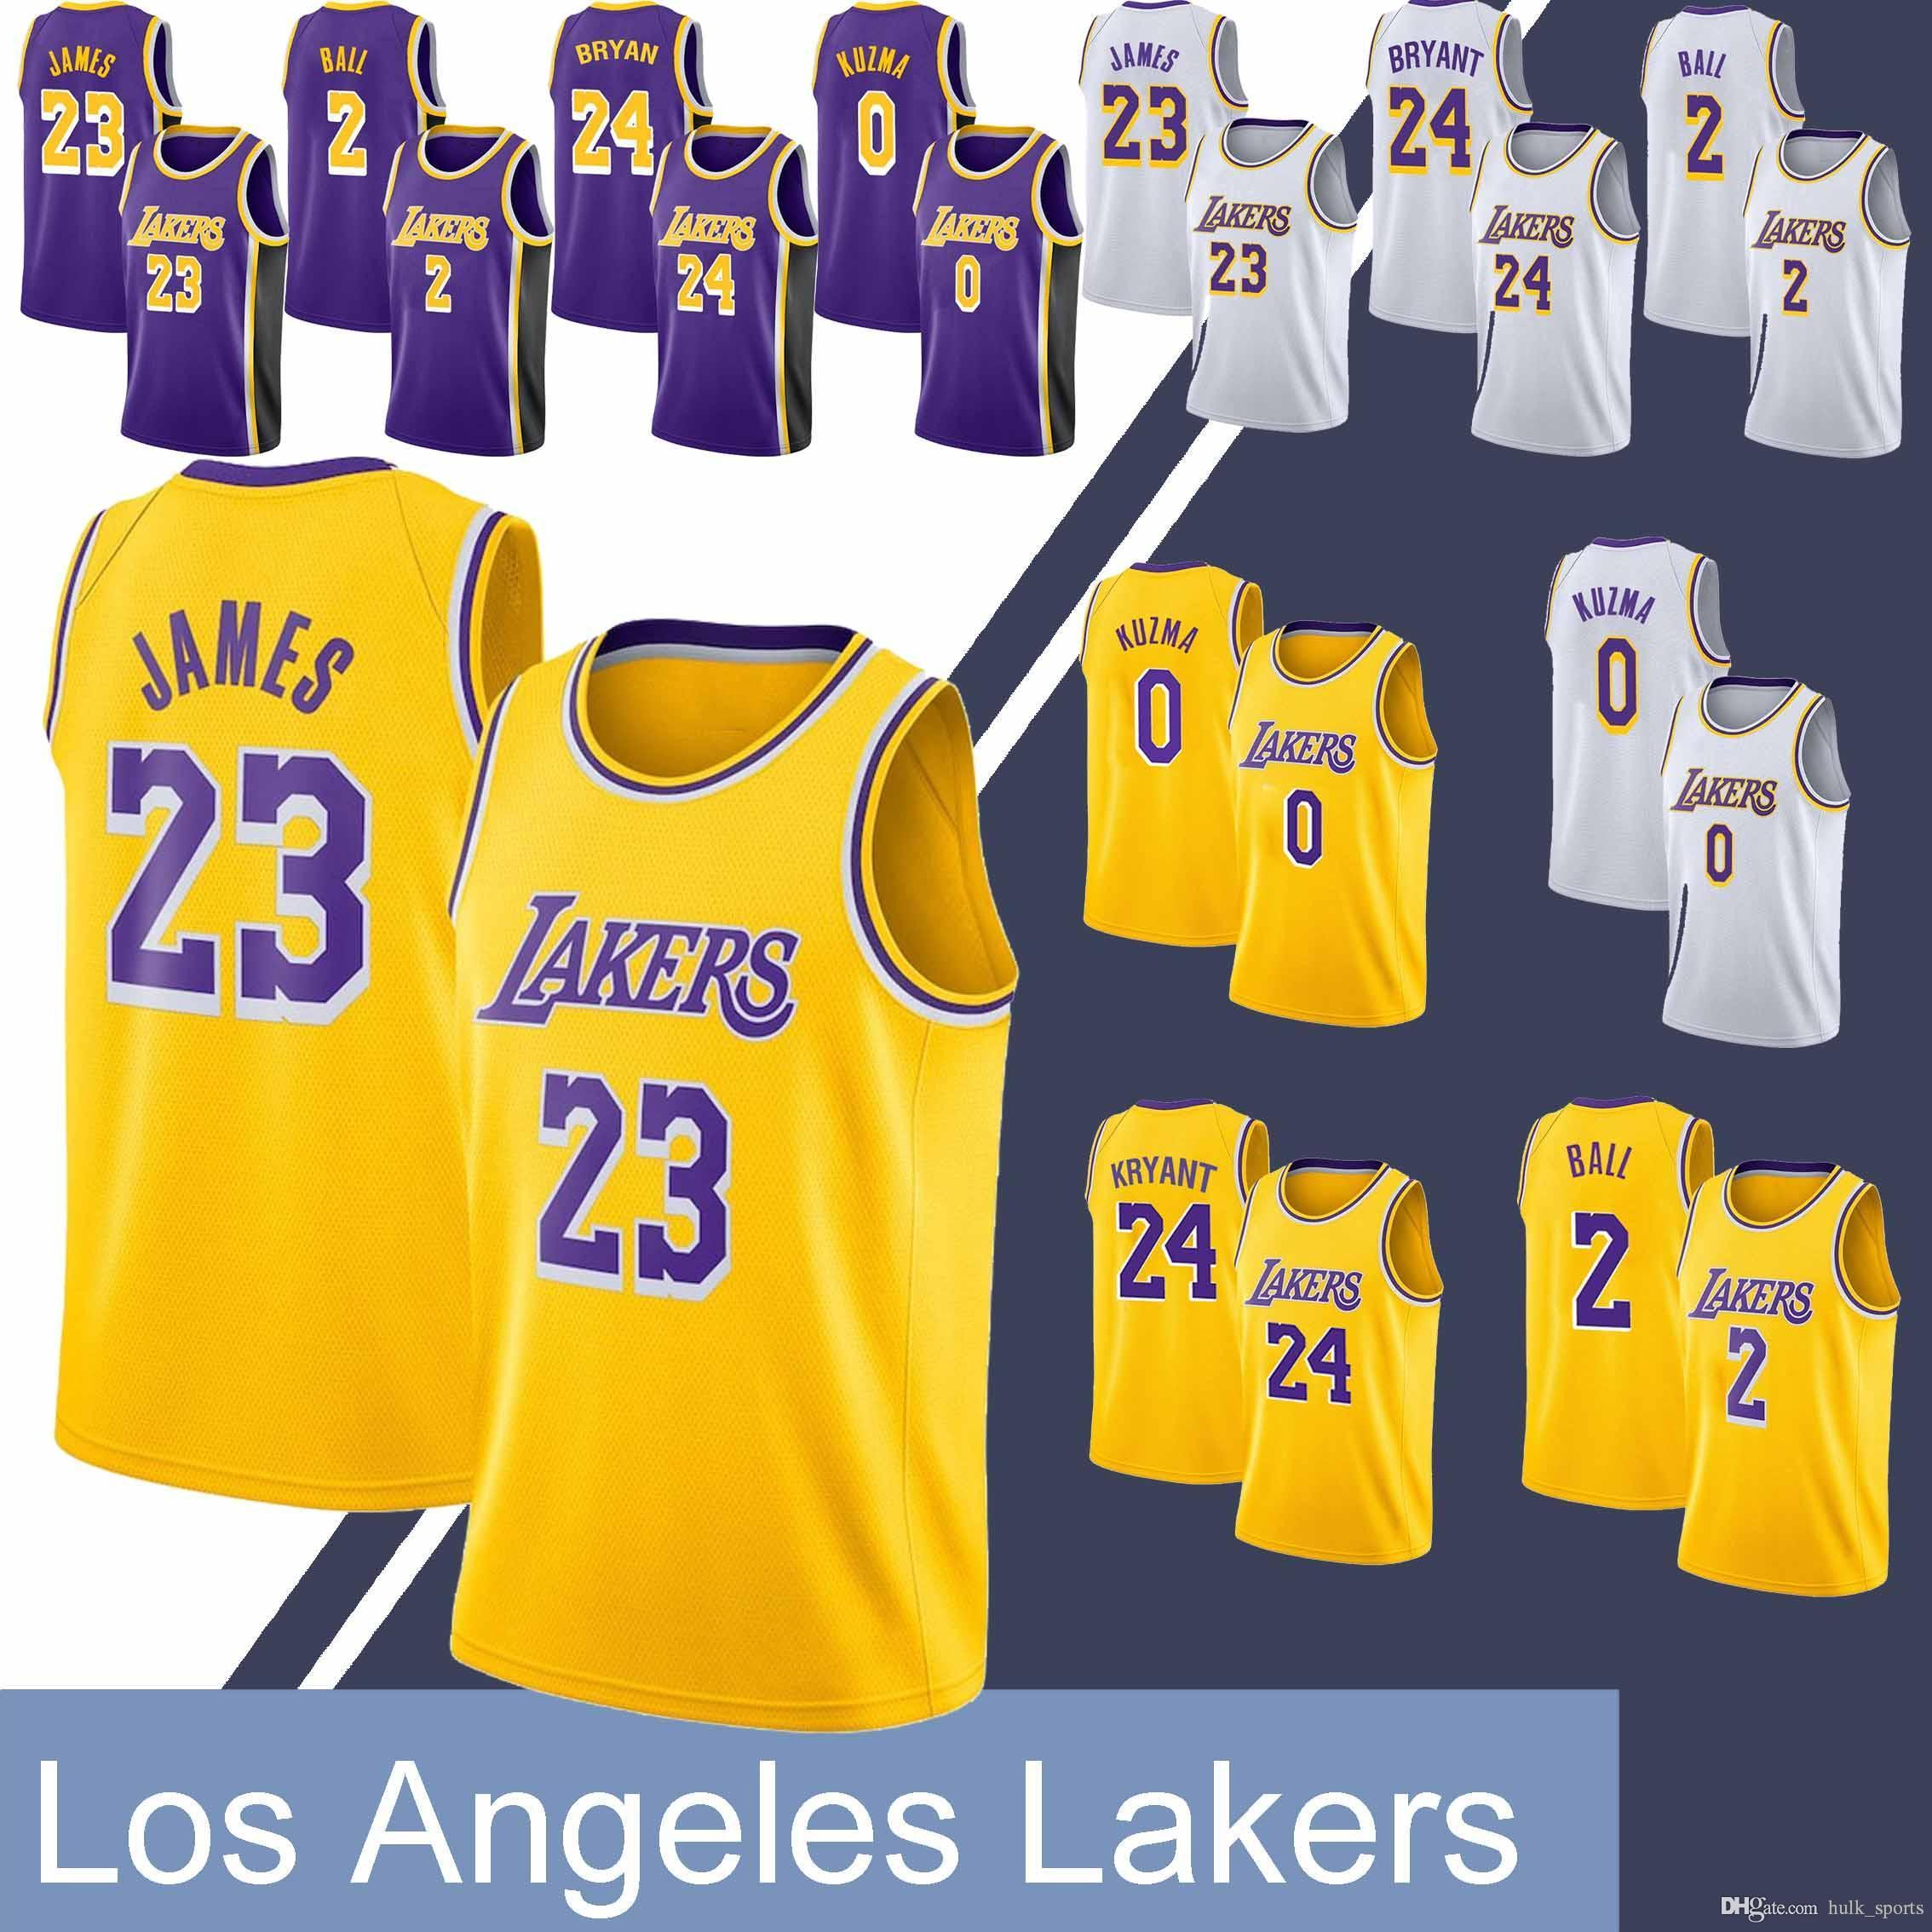 best service 1d25f c9182 23 LeBron James jersey Laker jerseys 24 Bryant 0 Kuzma 2 Ball Hot sale 2019  men basketball jerseys